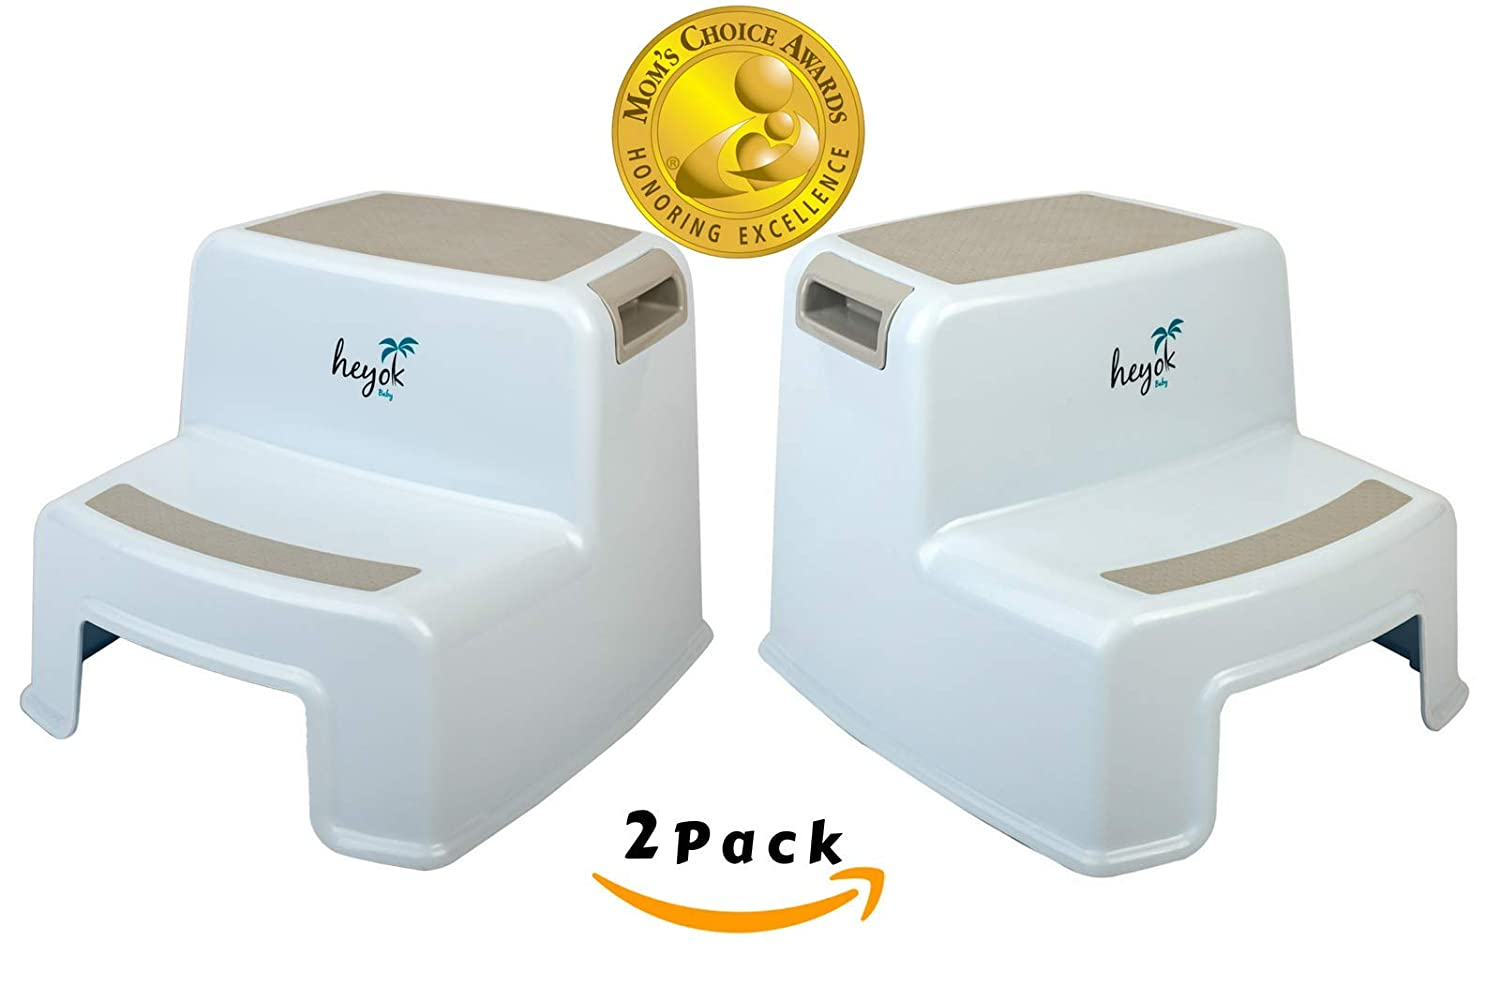 Dual Height 2 Step Stool (2-Pack) Mom's Choice Award Winner with Anti-slip Safety Rubber Pads – Kids step stool with Easy & Safe Pot Training and Teeth Brushing for Kids, Toddlers, and Children HEYOK Baby HB503